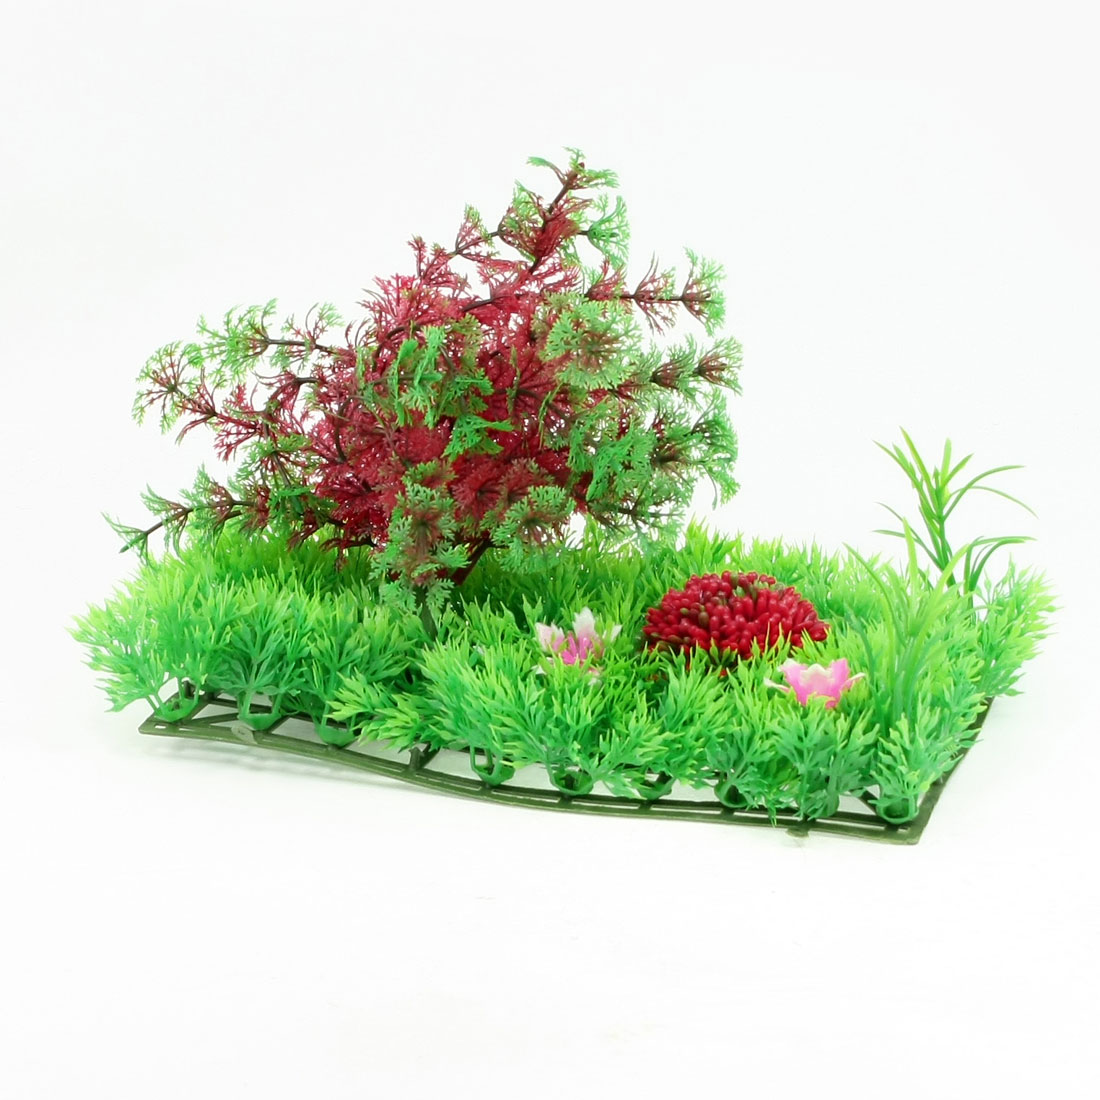 "Fish Tank Plastic Crimson Green Snow Flake Leaf Plants Lawn Decor 9.8"" x 4.5"""